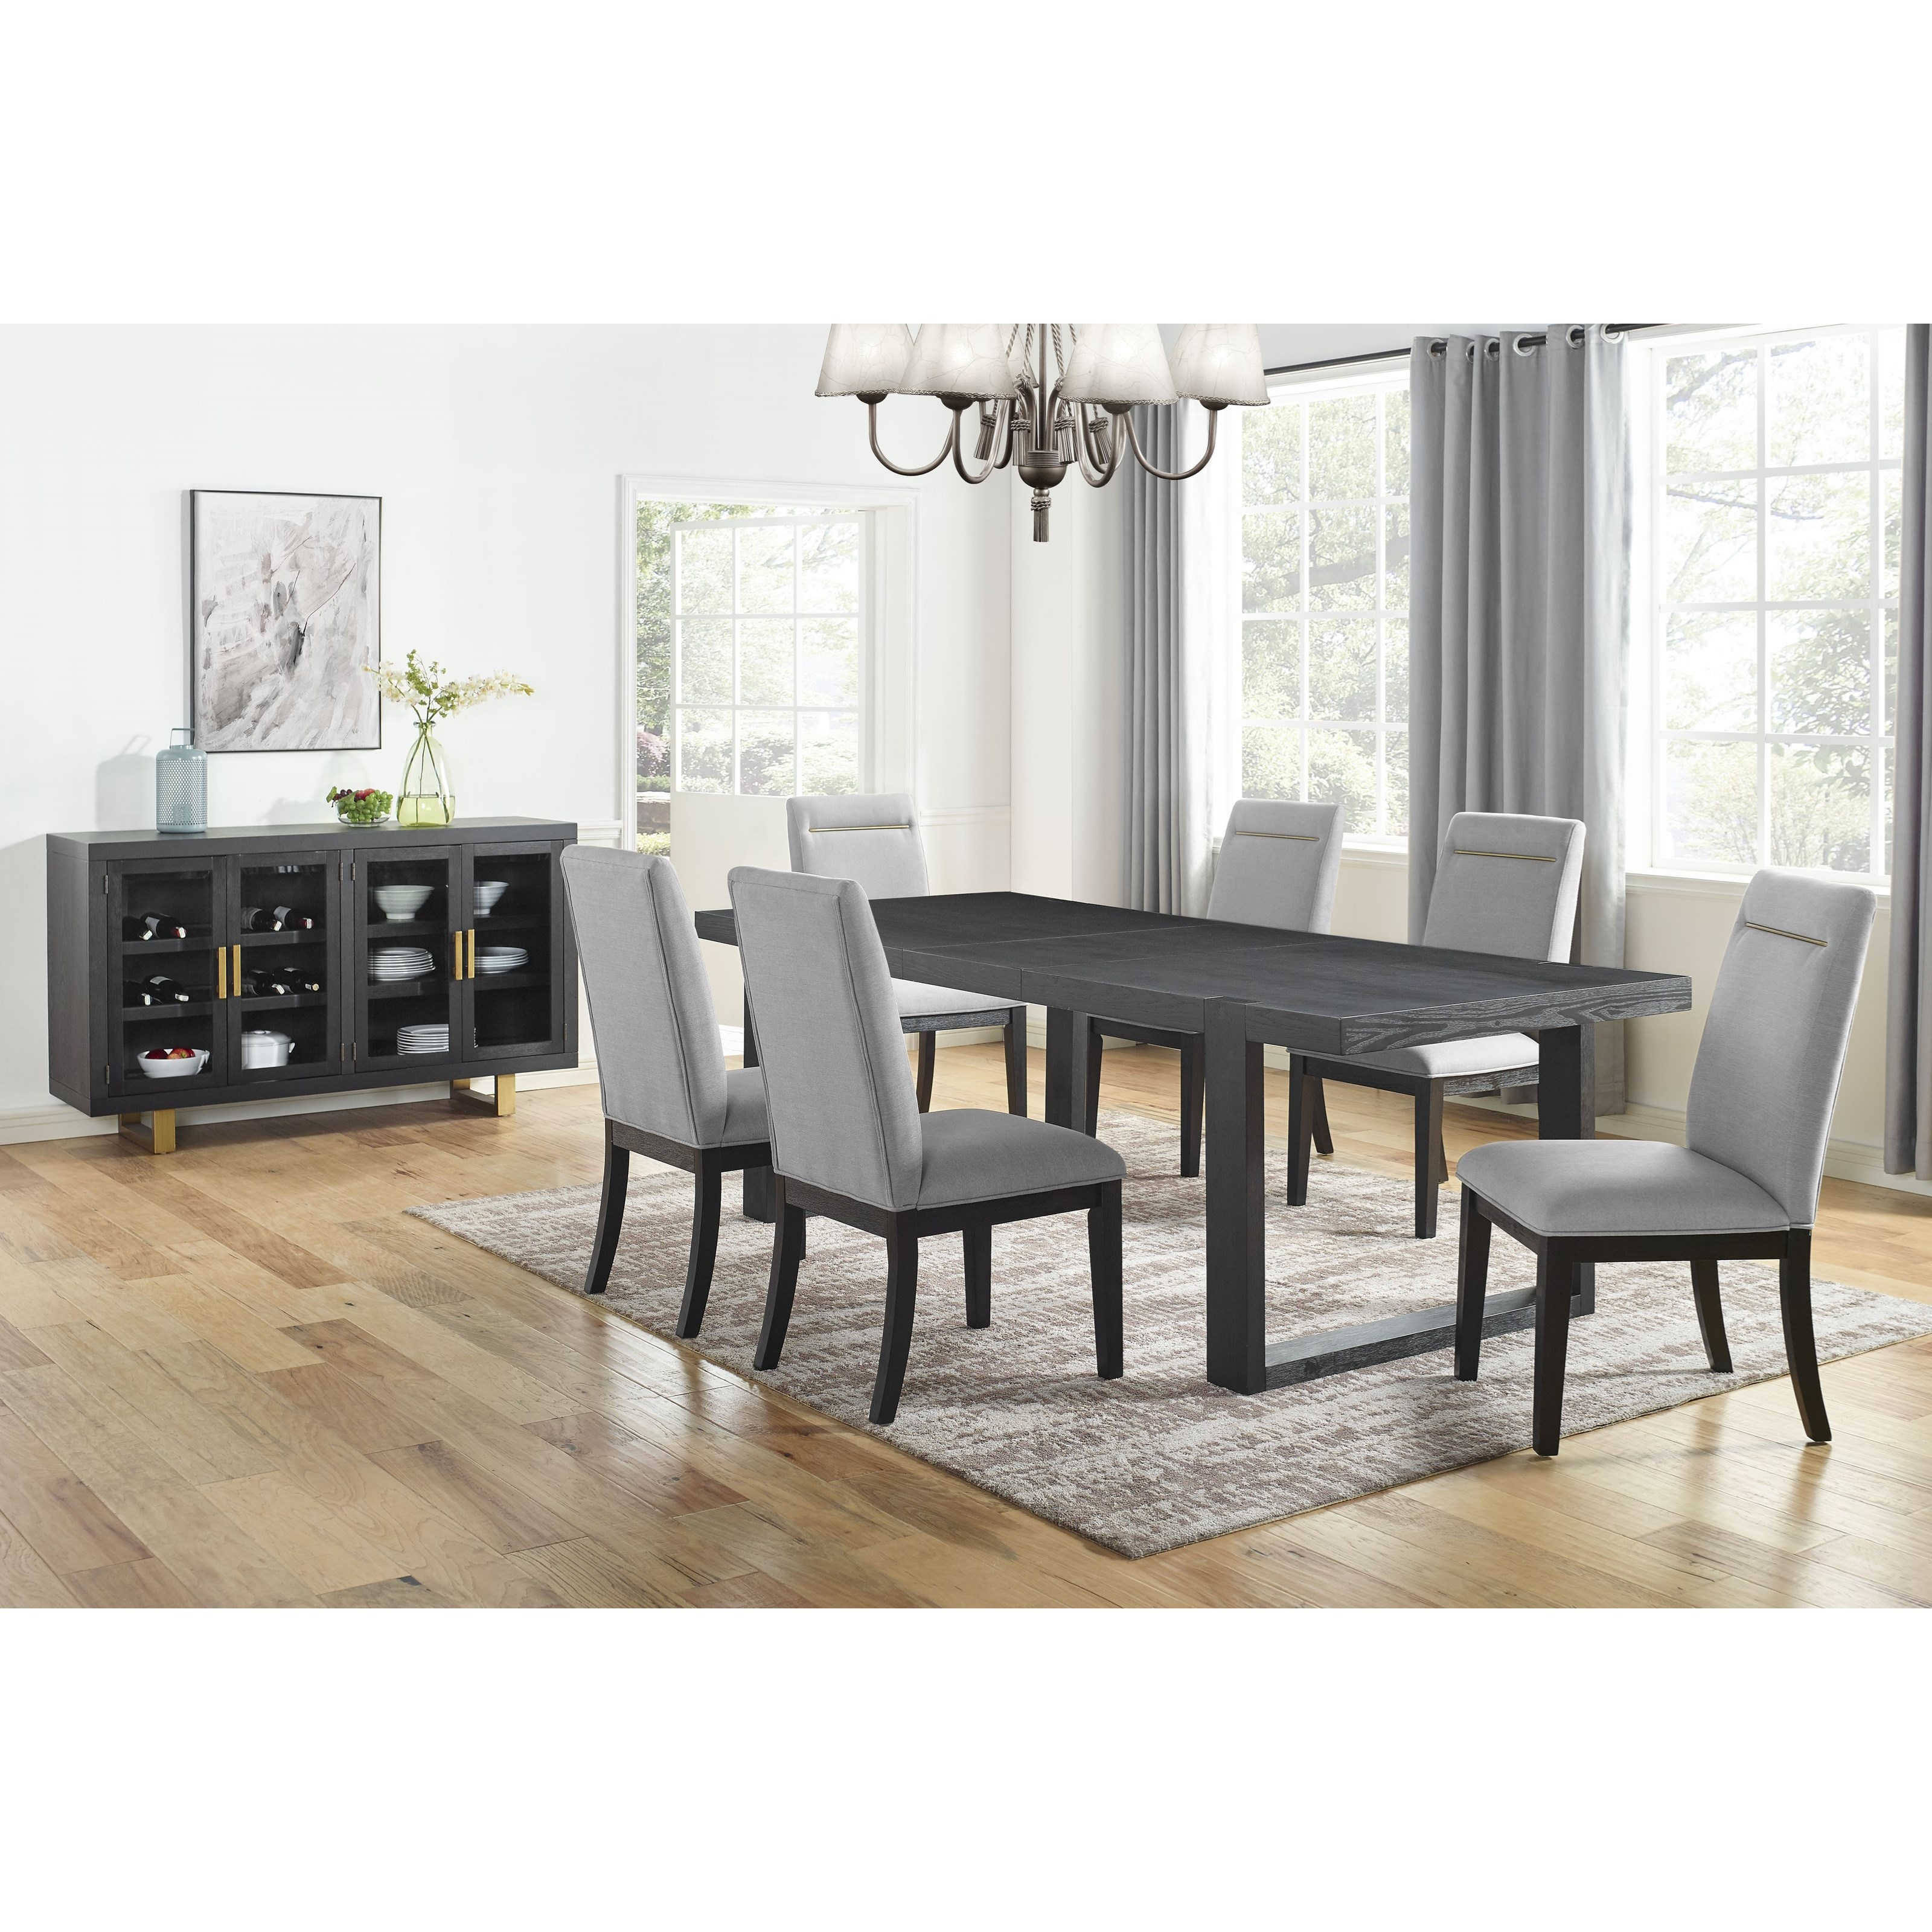 Yves Dining Room Group by Steve Silver at Northeast Factory Direct